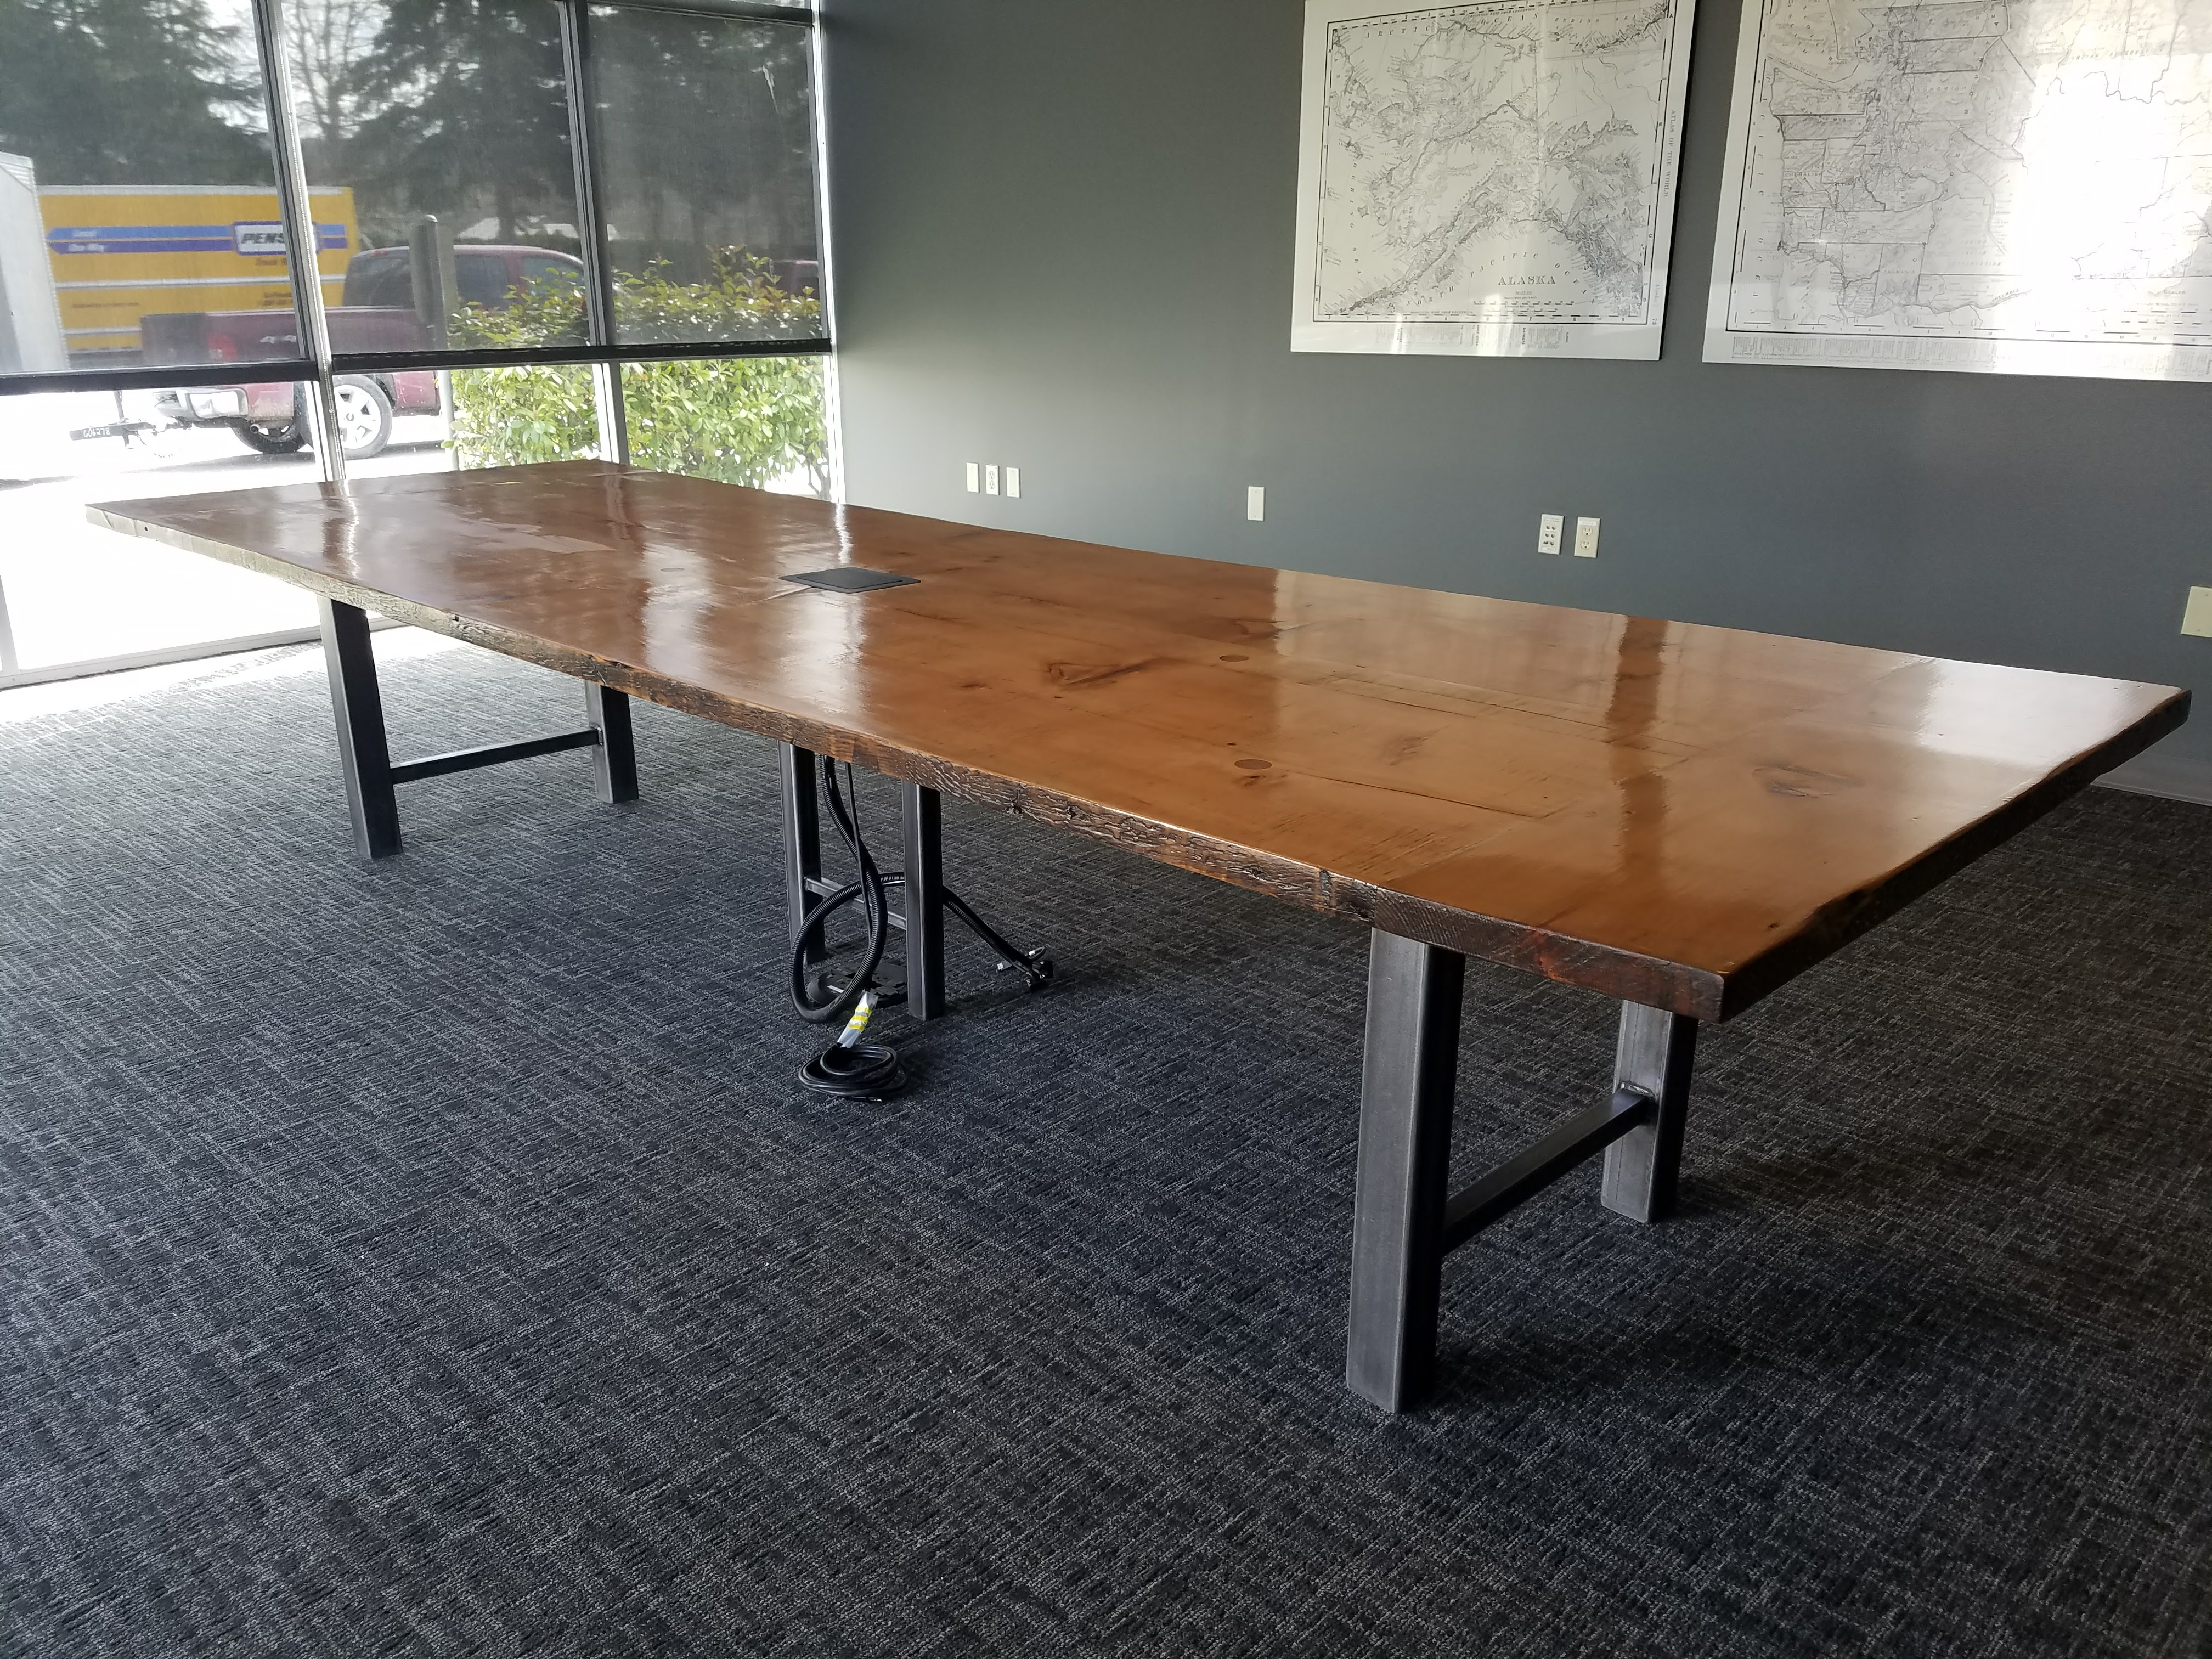 12' Conference Room Table